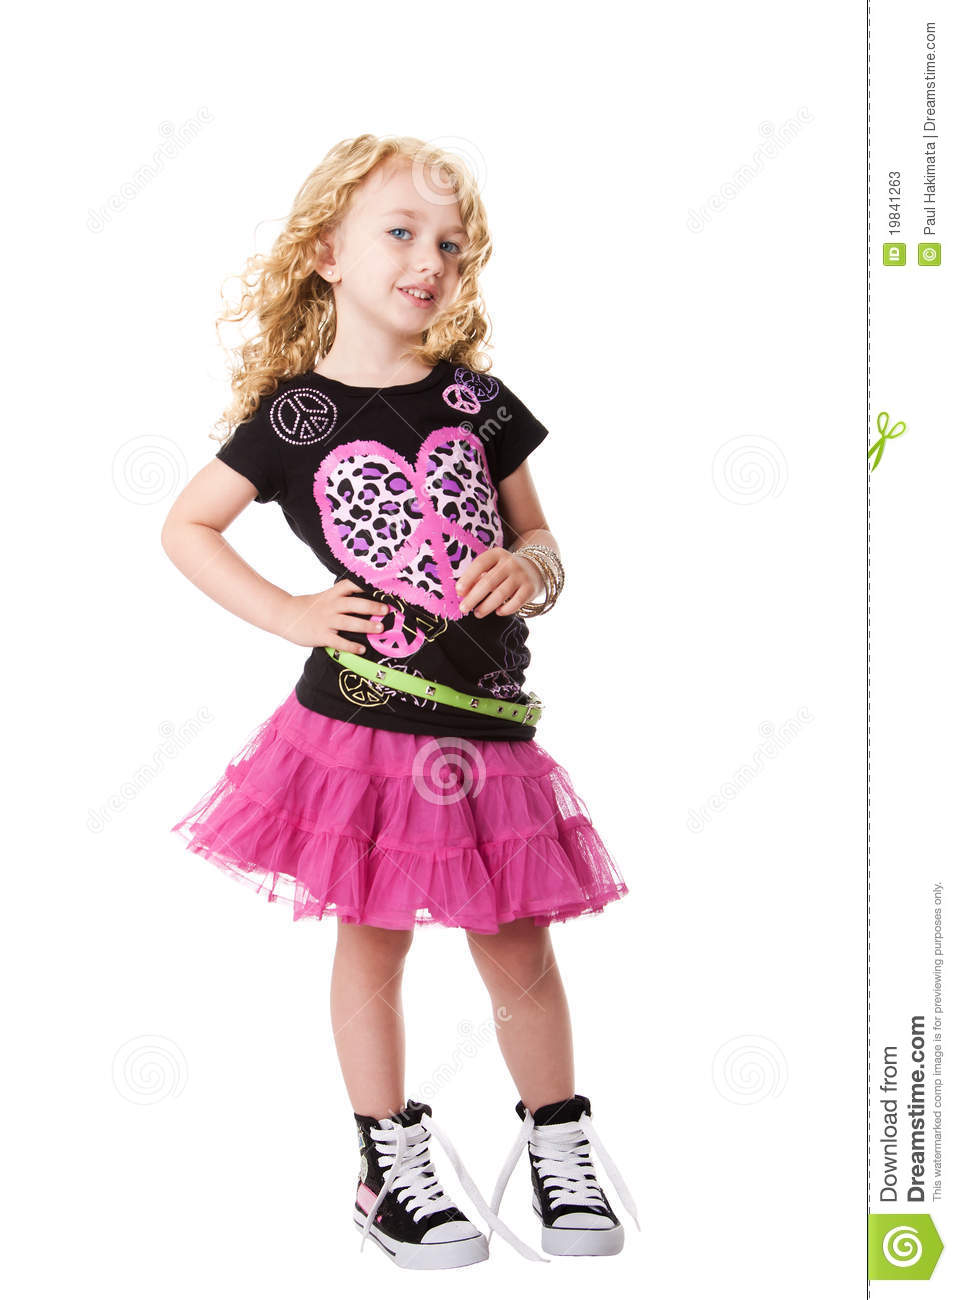 Fashion rock'n roll child stock image  Image of black - 19841263